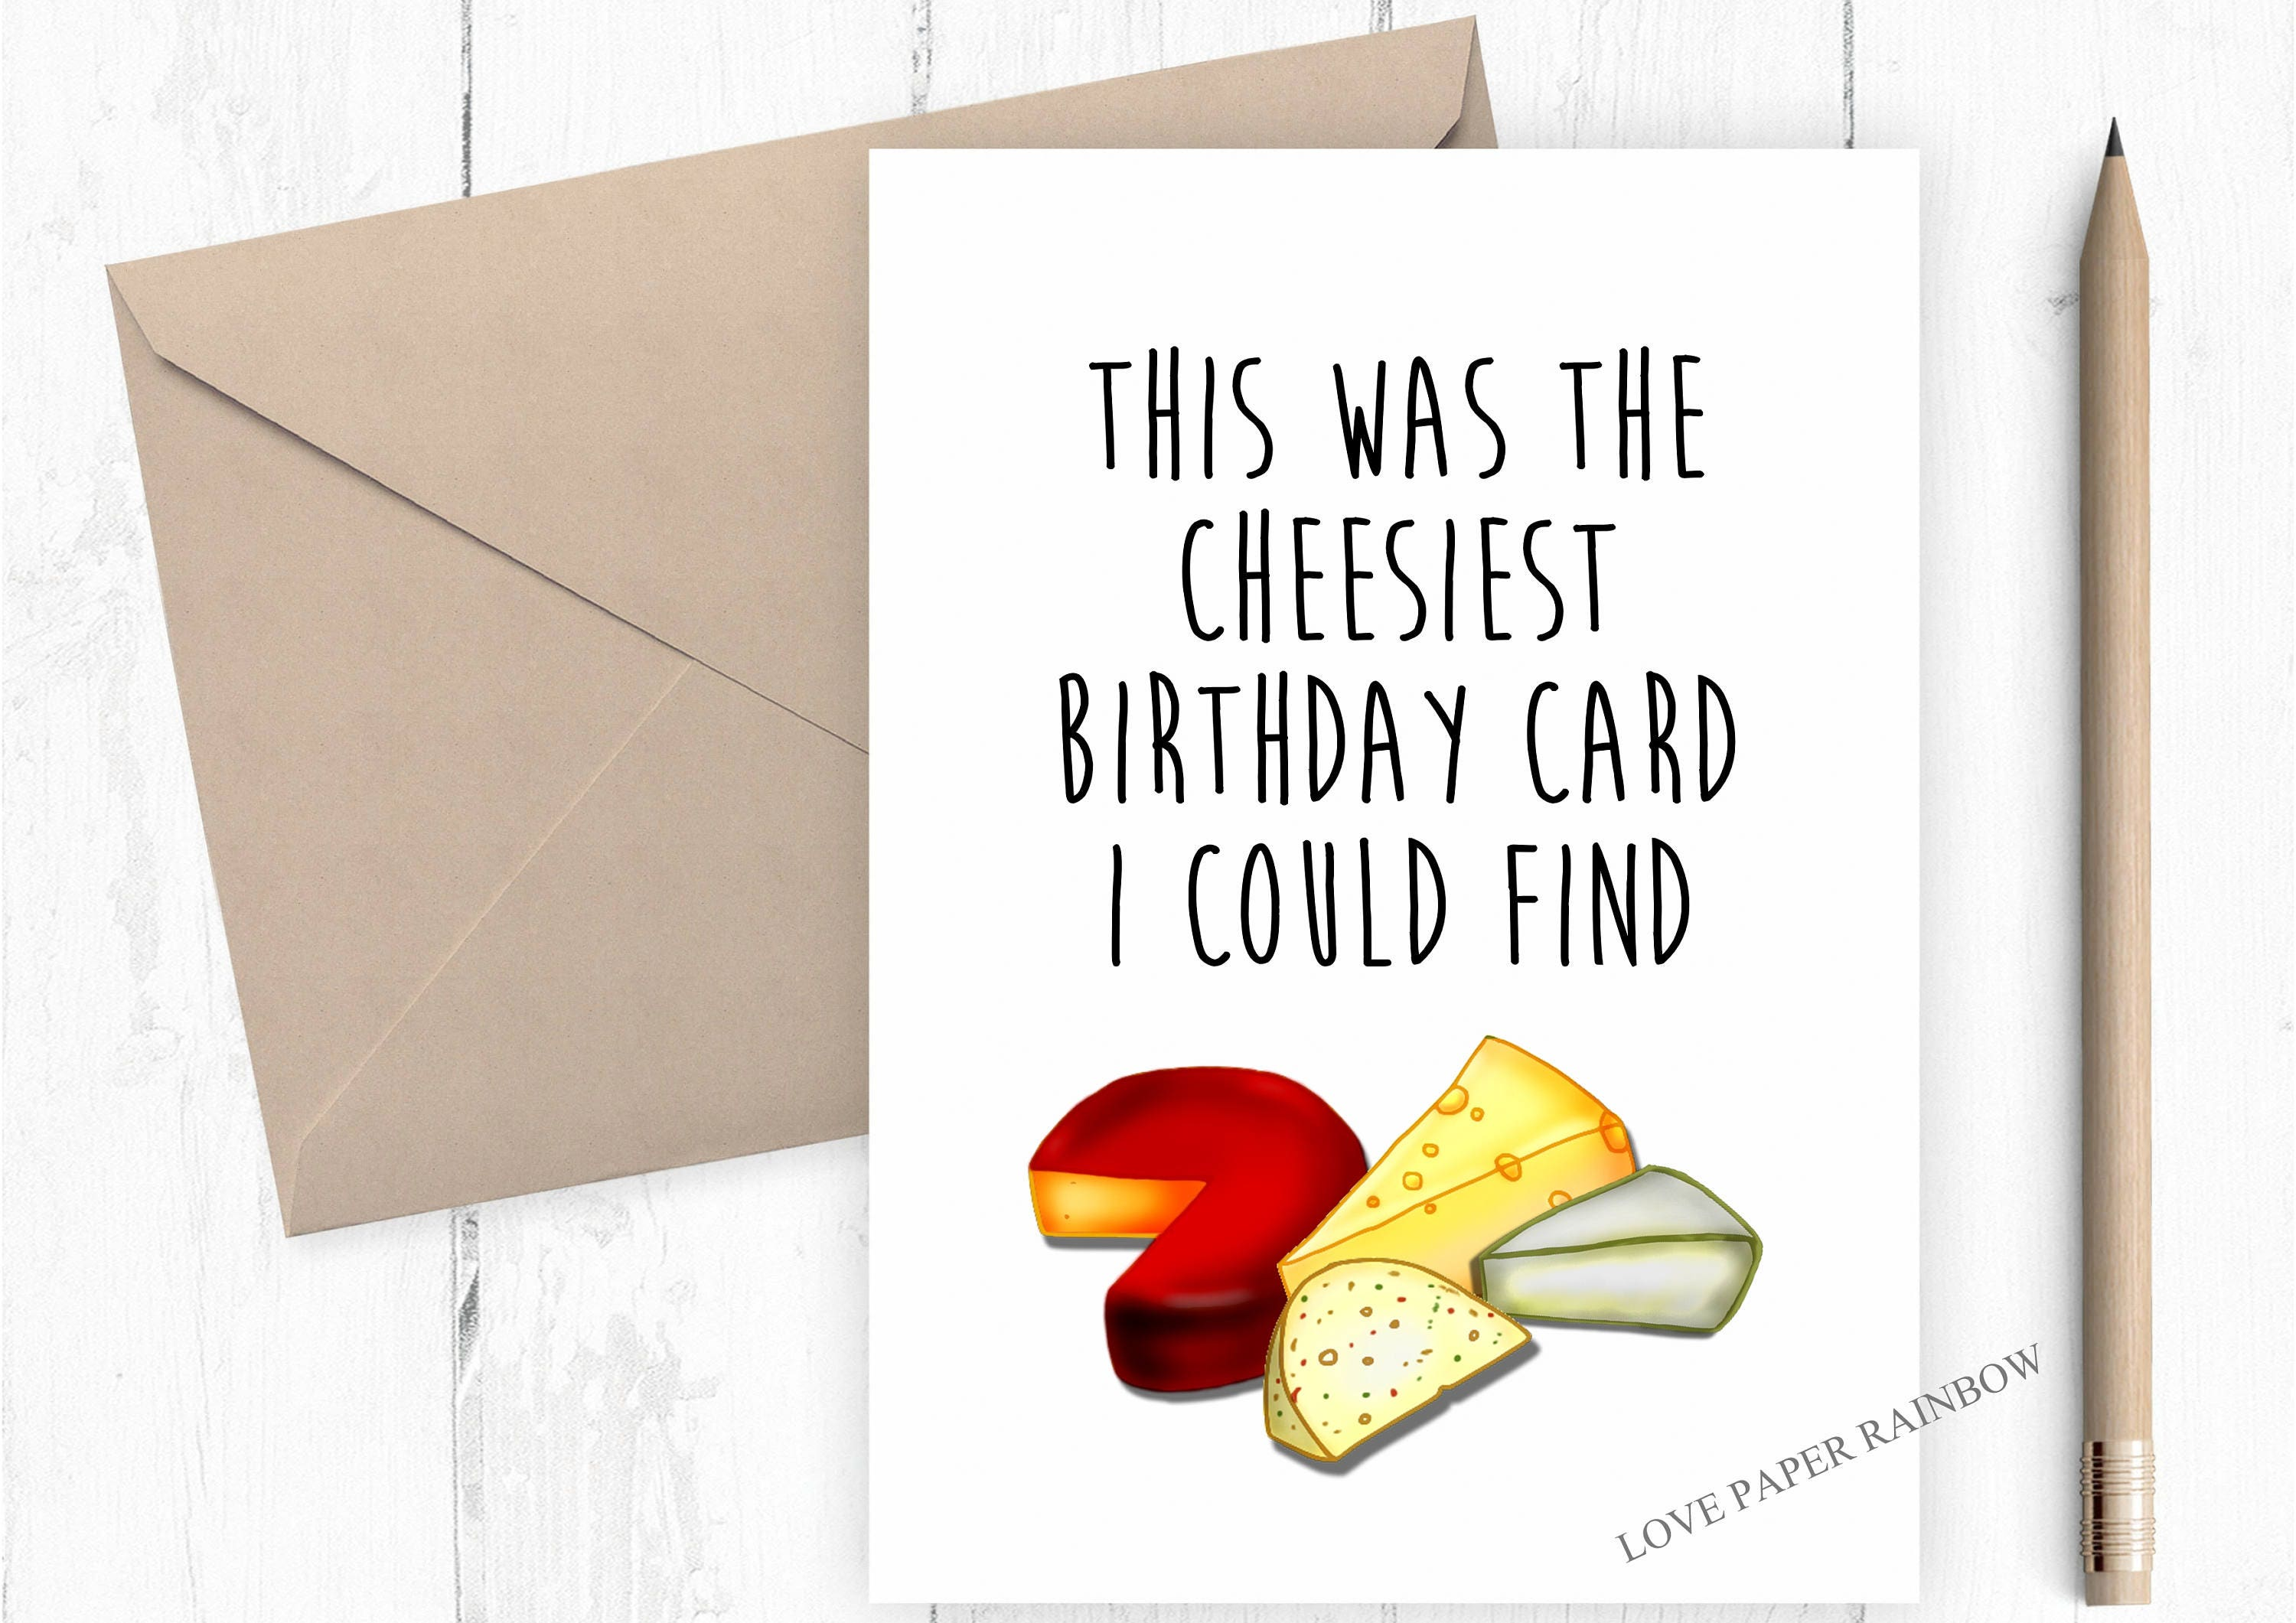 cheesy birthday card funny birthday card cheese birthday